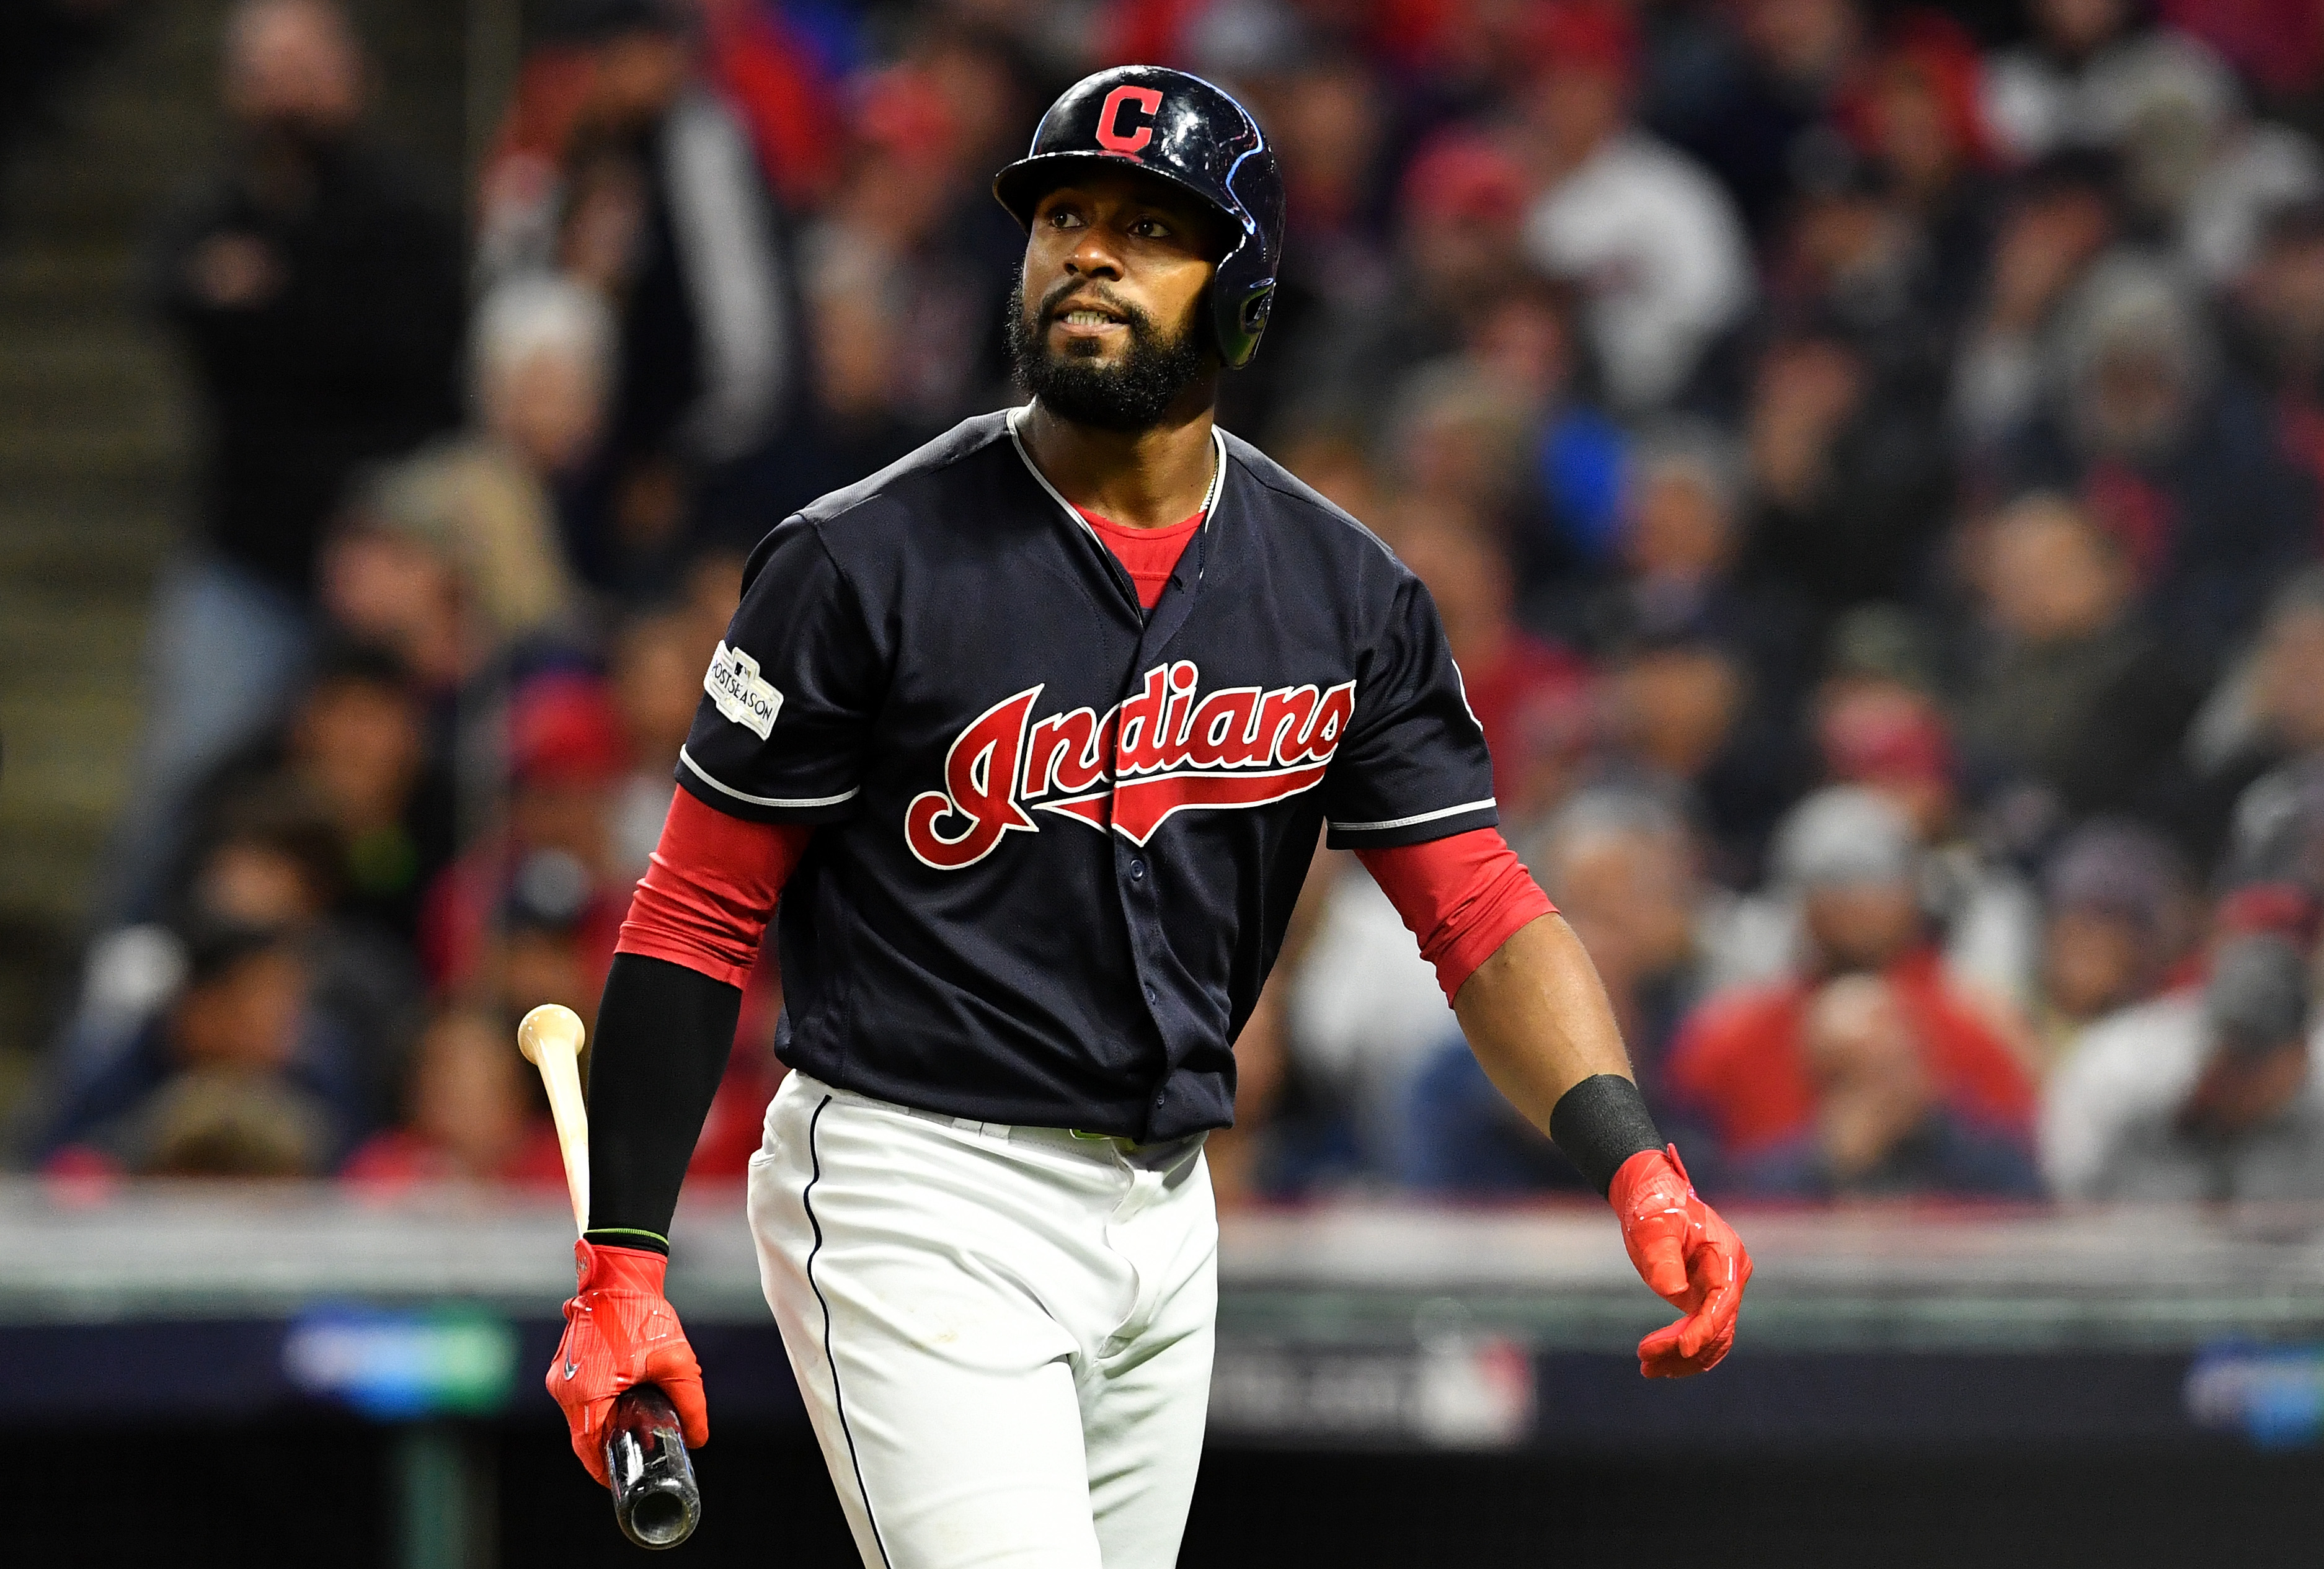 Cleveland indians roundtable remaining moves to make - Cleveland indians pictures ...